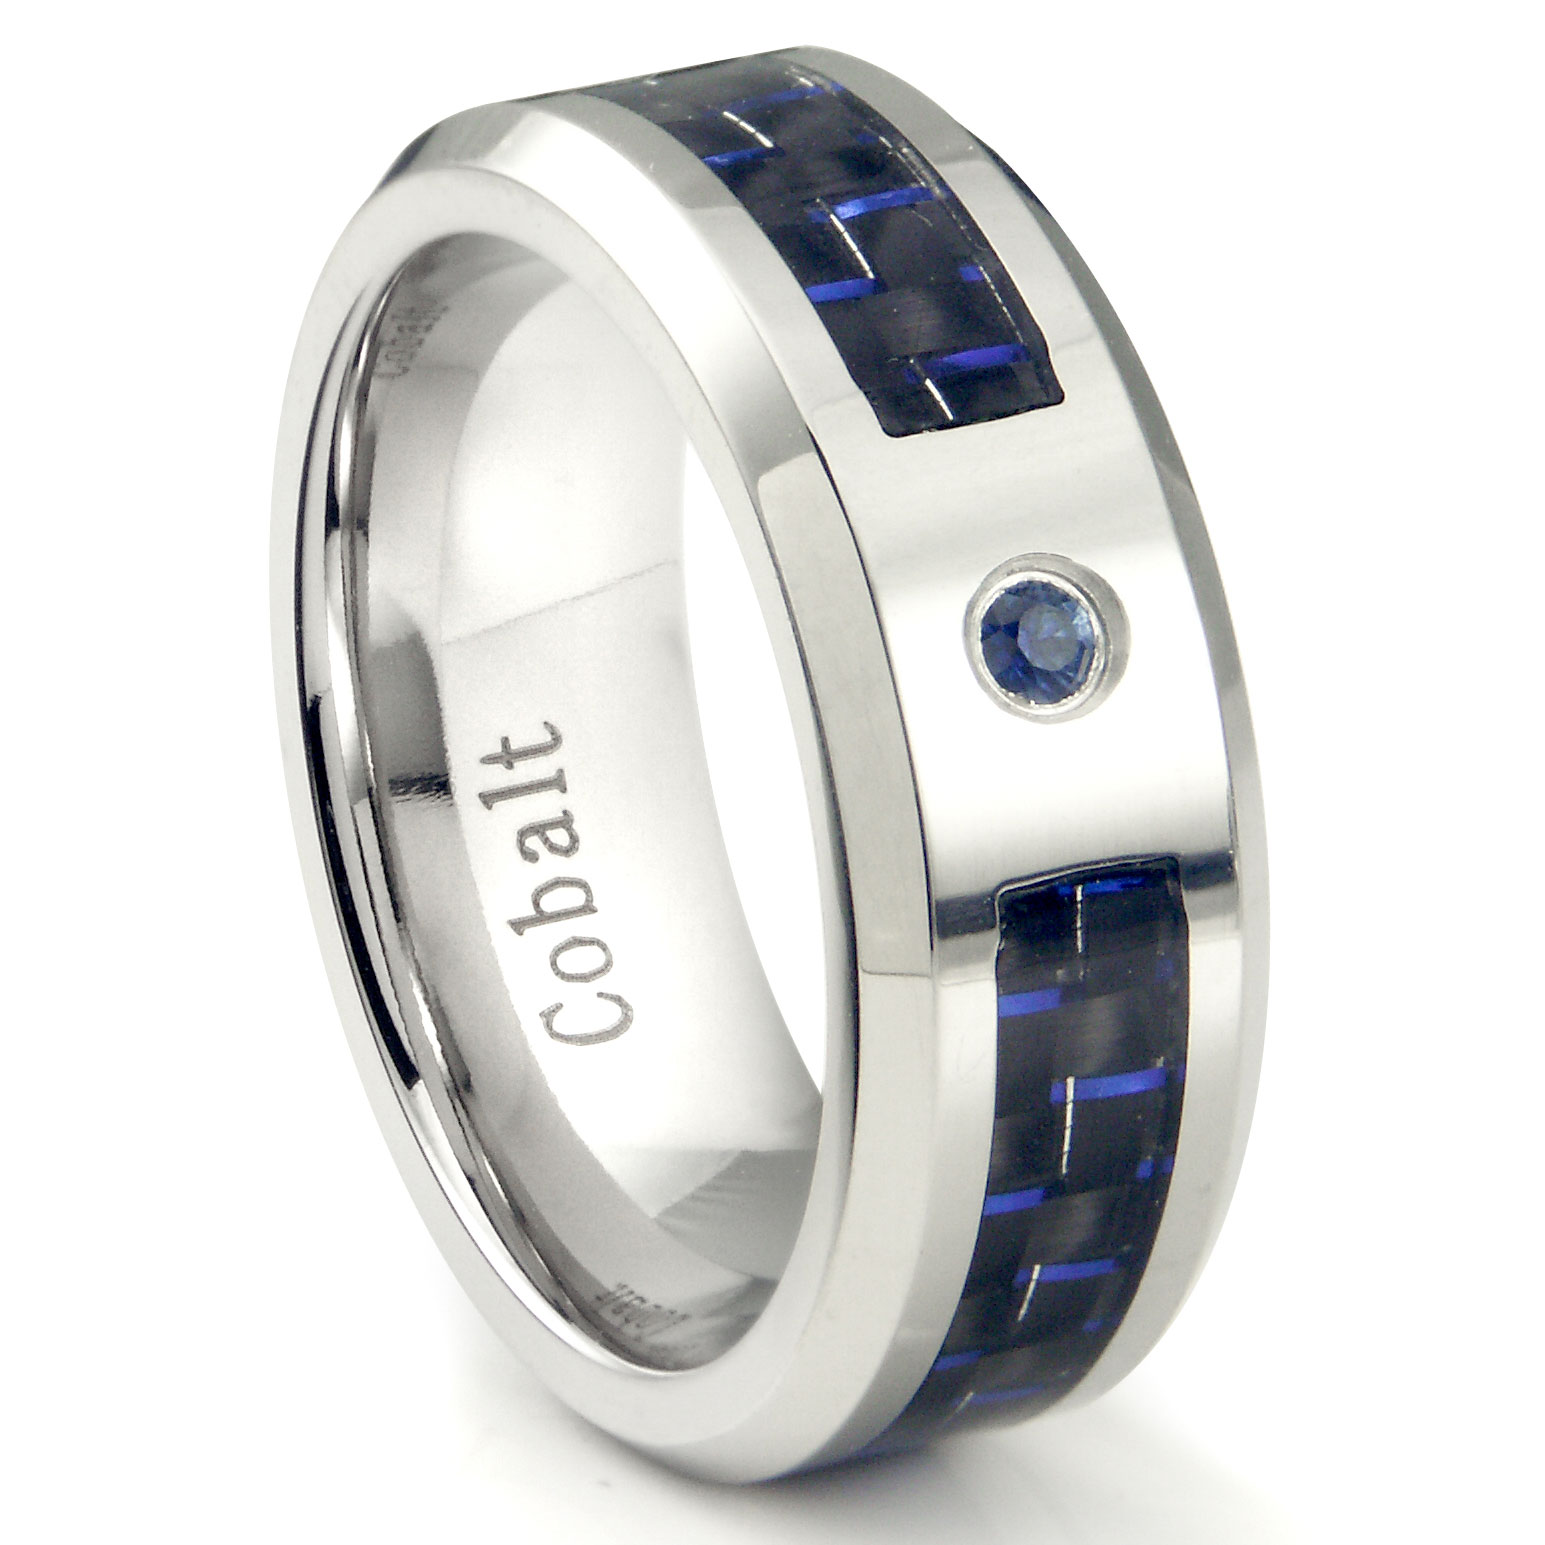 Cobalt Chrome 8MM Blue Sapphire Blue Carbon Fiber Inlay Wedding Band Ring P cobalt wedding rings Home Cobalt Rings Loading zoom